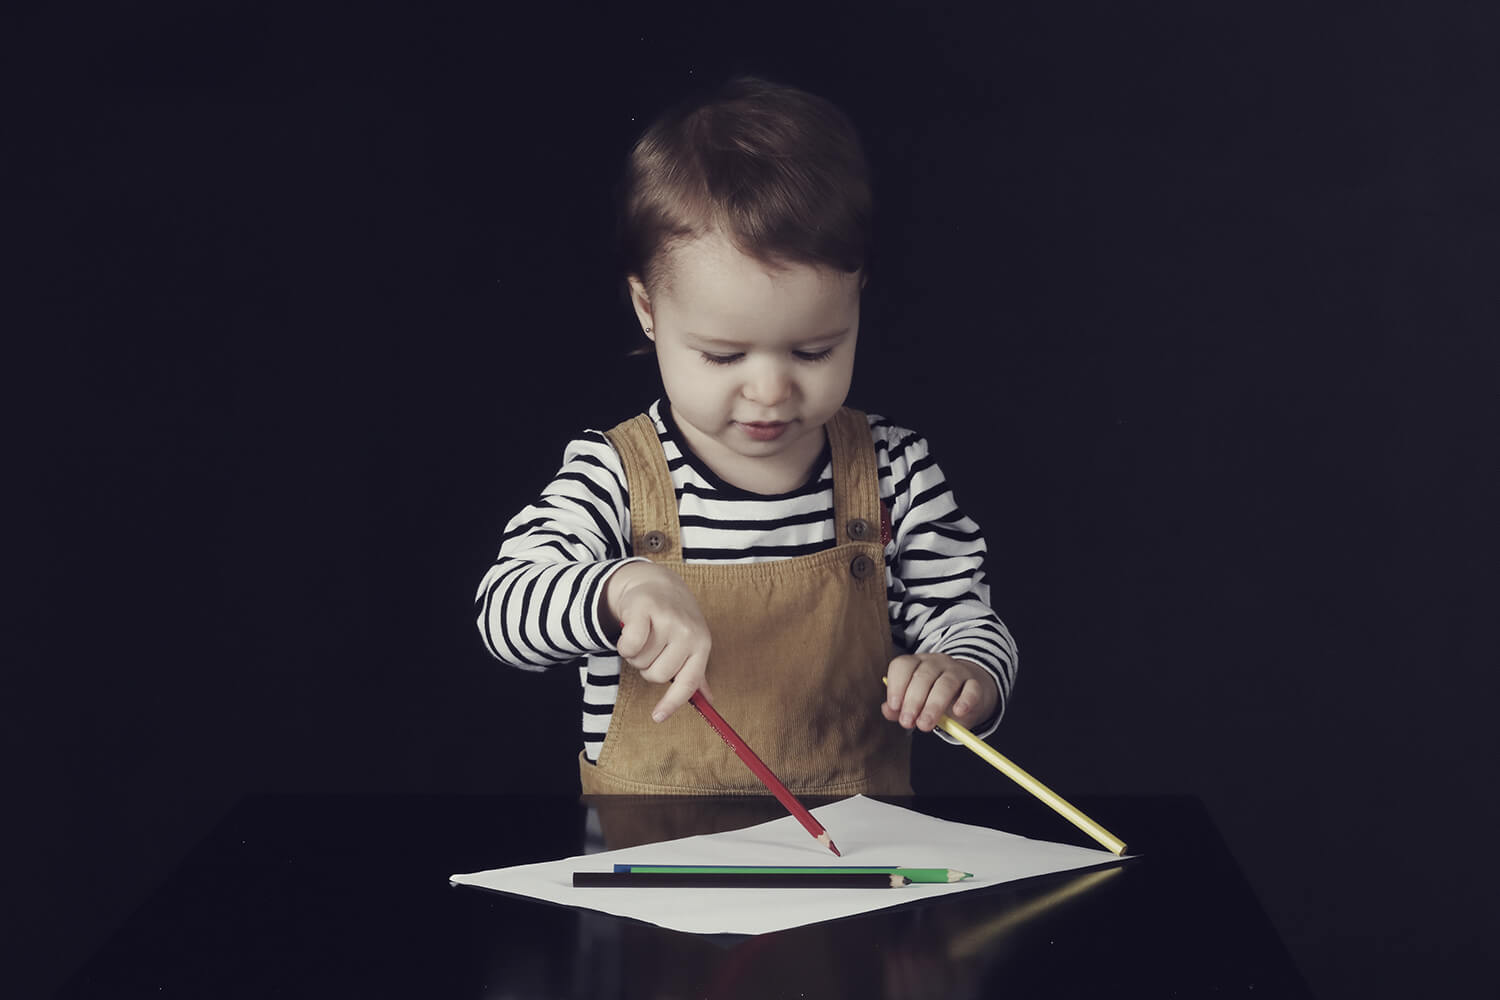 family photo of a drawing little girl on a dark background